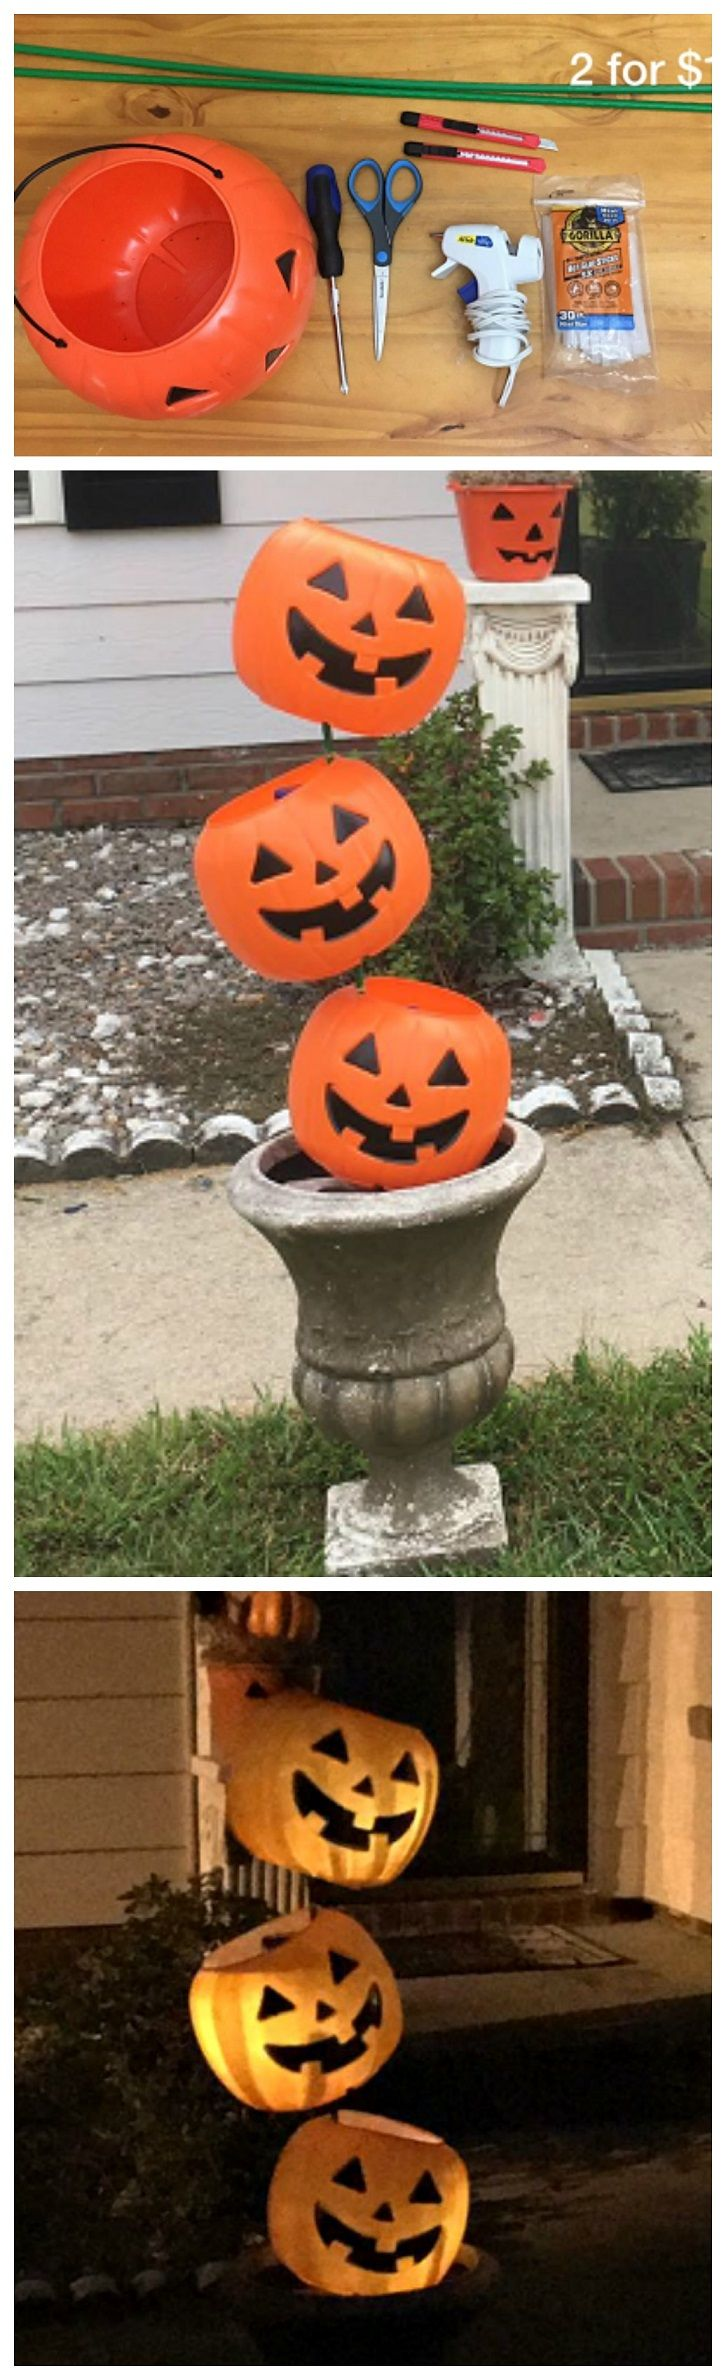 Essay on halloween top 25 ideas about homemade halloween decorations top 25 ideas about homemade halloween decorations top 25 ideas about homemade halloween decorations halloween party solutioingenieria